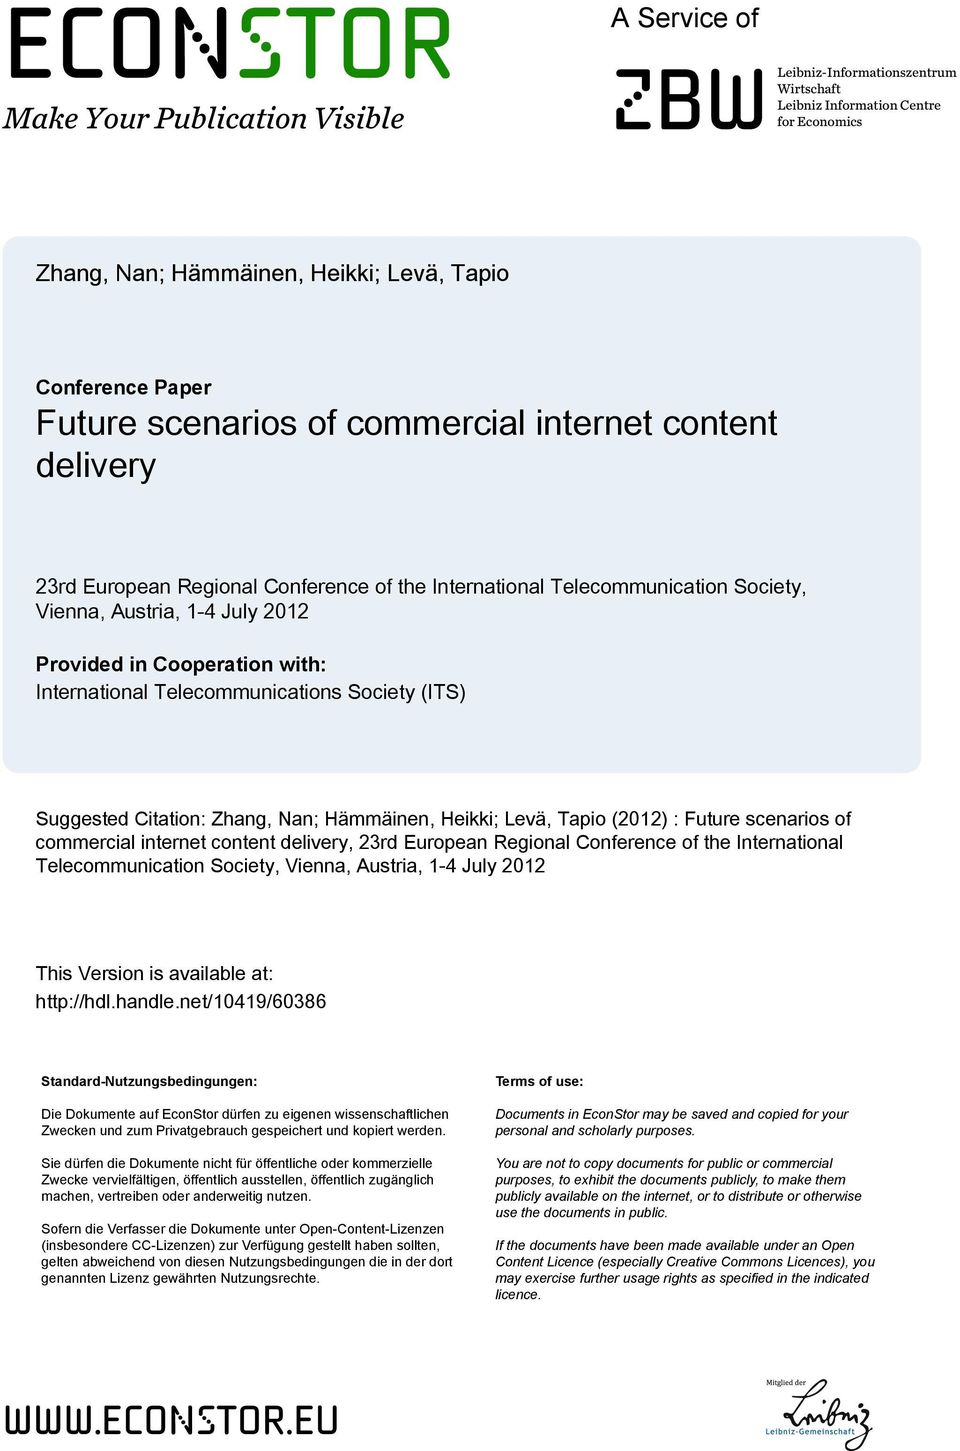 Telecommunications Society (ITS) Suggested Citation: Zhang, Nan; Hämmäinen, Heikki; Levä, Tapio (2012) : Future scenarios of commercial internet content delivery, 23rd European Regional Conference of